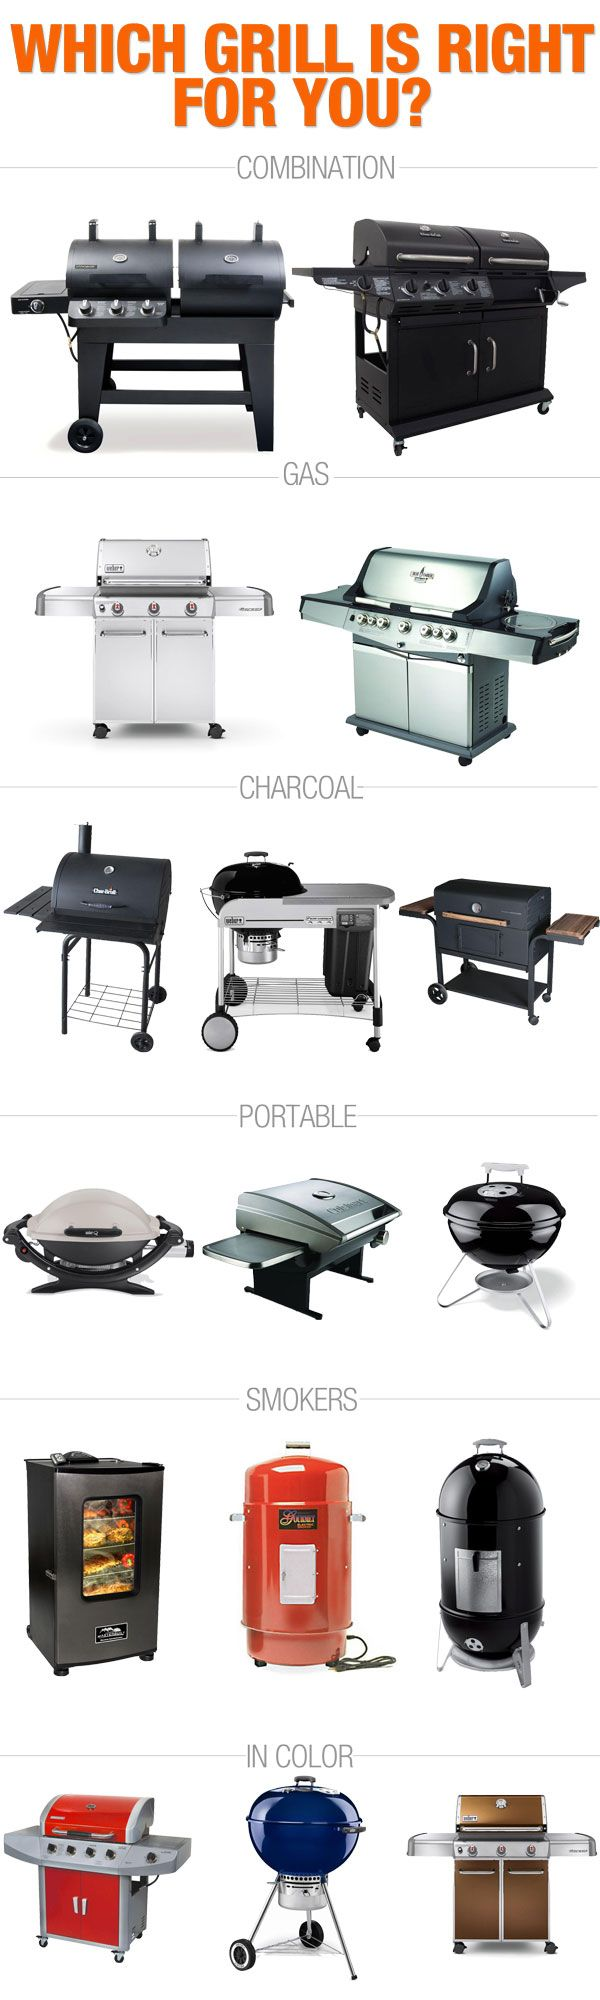 Looking to upgrade your grill in time for Memorial Day and July 4th? Here are some of our (and our customers') favorite options! #grilling